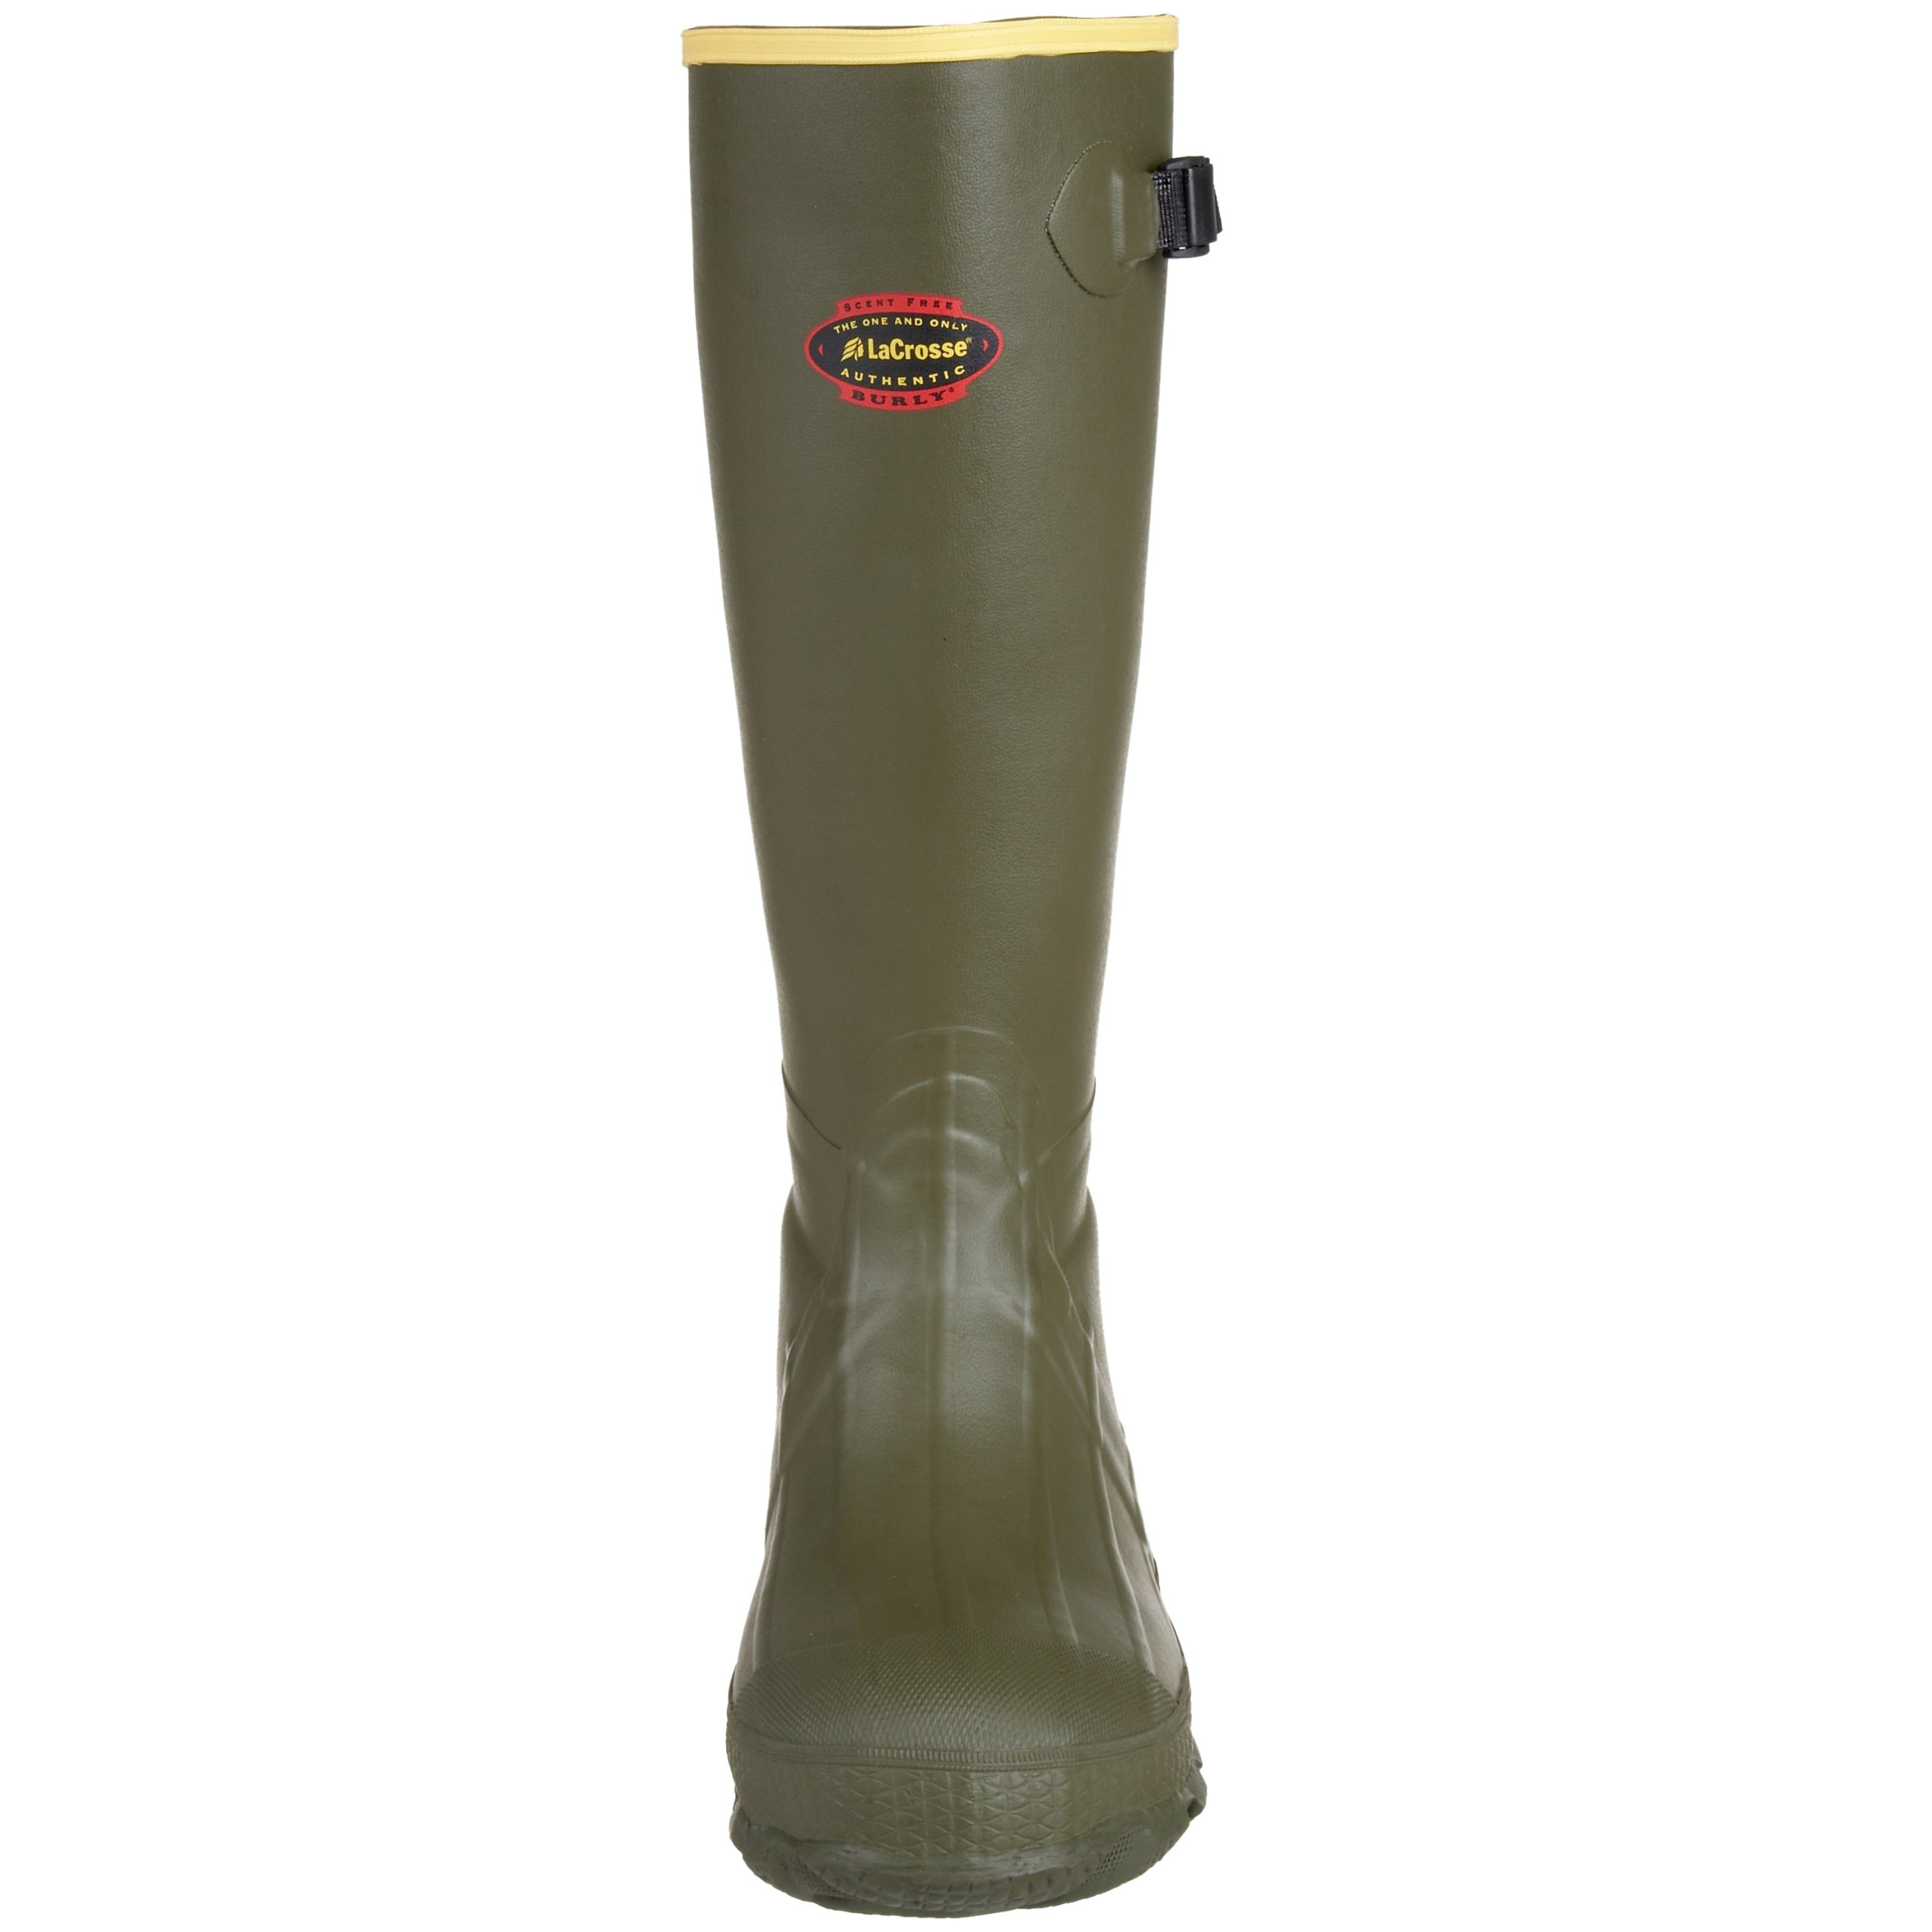 LaCrosse Men's 18'' Burly Classic Hunting Boot,OD Green,5 M US by Lacrosse (Image #4)